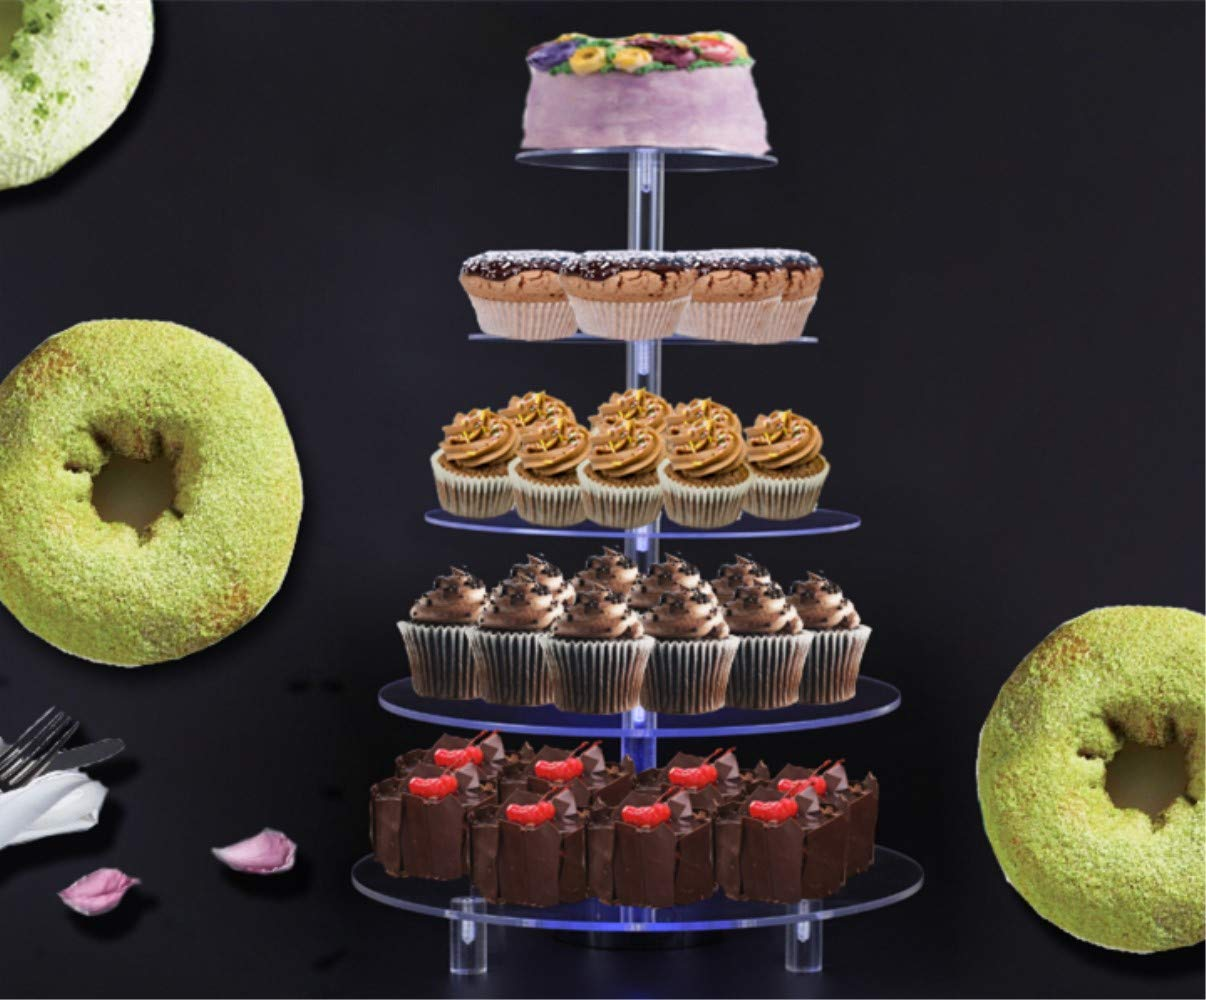 BonNoces 5 Tiers Round Cupcake Stand with LED Light - Clear Acrylic Cake Dessert Stand - Tiered Pastry Tree Tower with Base for Wedding, Birthday Party by BonNoces (Image #7)